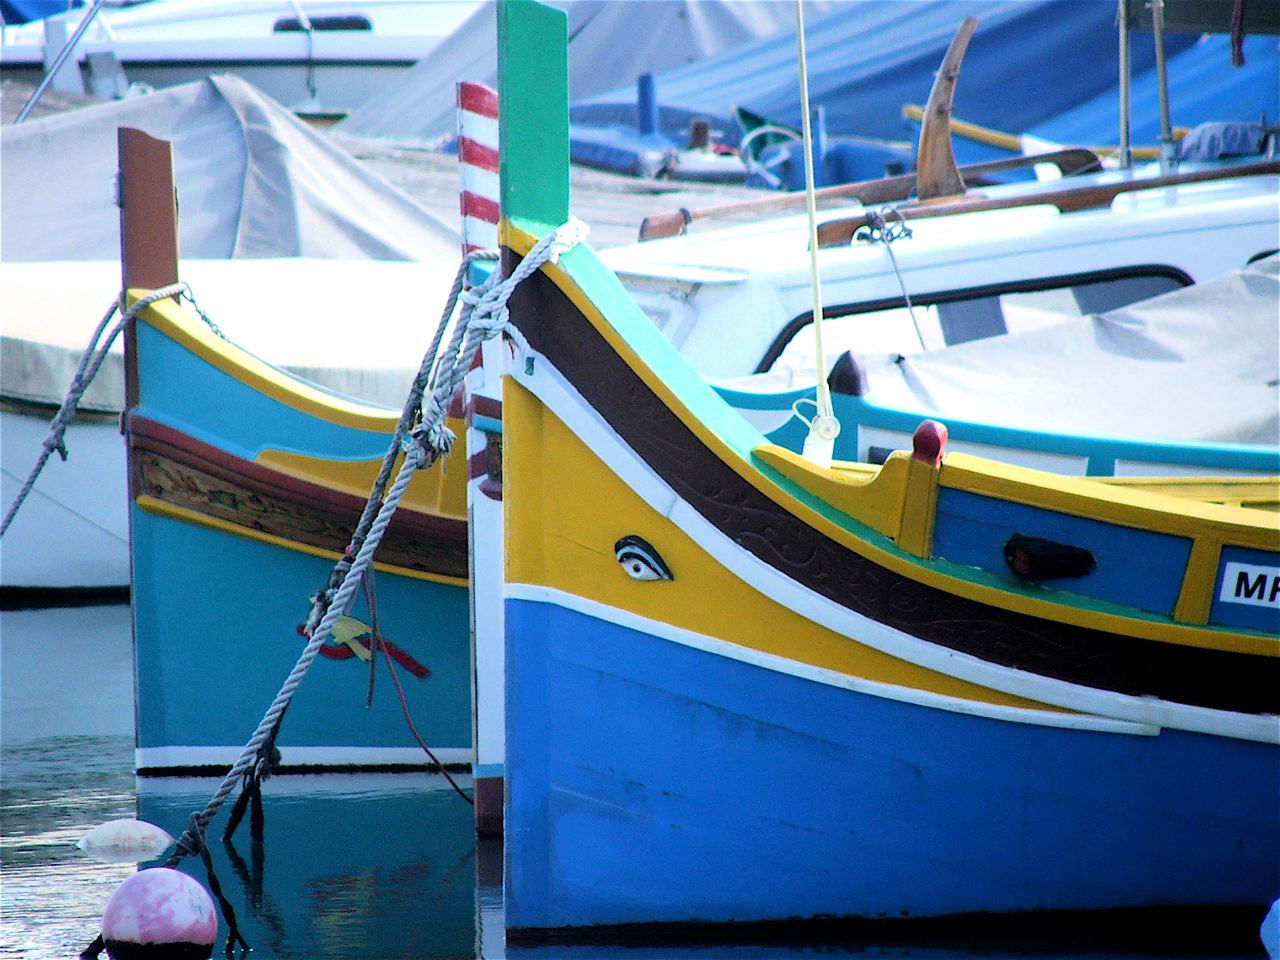 Fishing Boats with Eye of Horus (KNOW MALTA) by Peter Grima from MALTA - FISHING BOATS, CC BY-SA 2.0, https://commons.wikimedia.org/w/index.php?curid=57478646